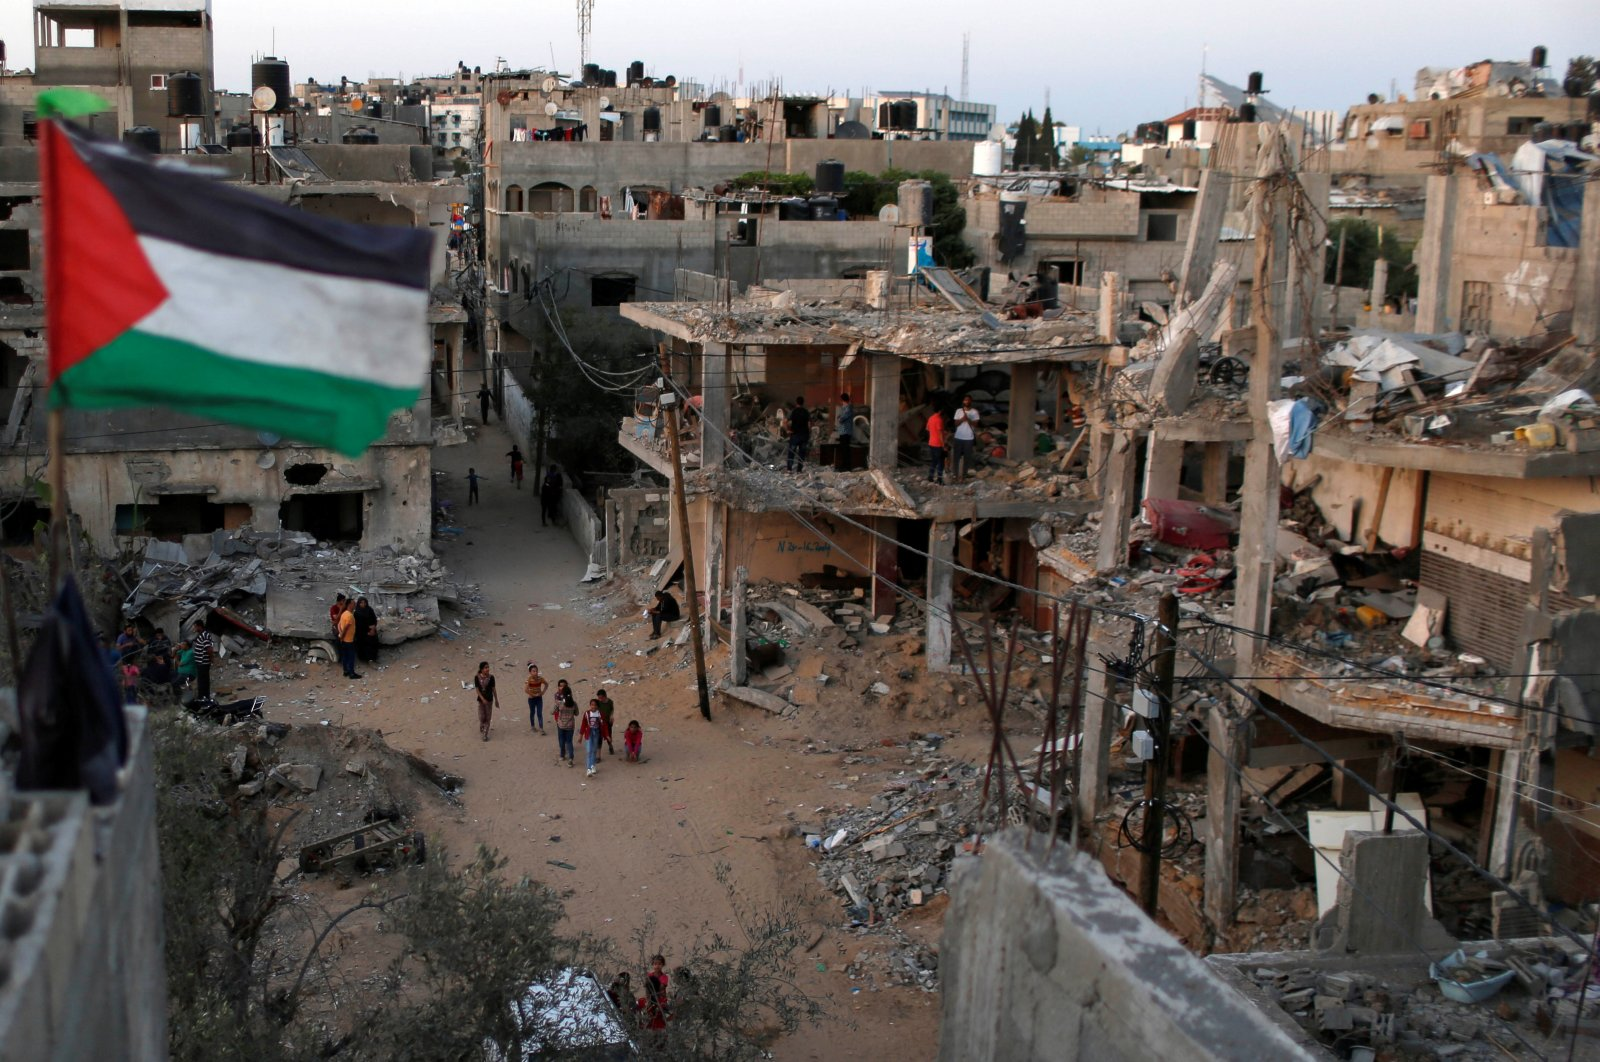 A Palestinian flag flies amid the ruins of houses destroyed by Israeli airstrikes, the Gaza Strip, Palestine, May 25, 2021. (Reuters Photo)